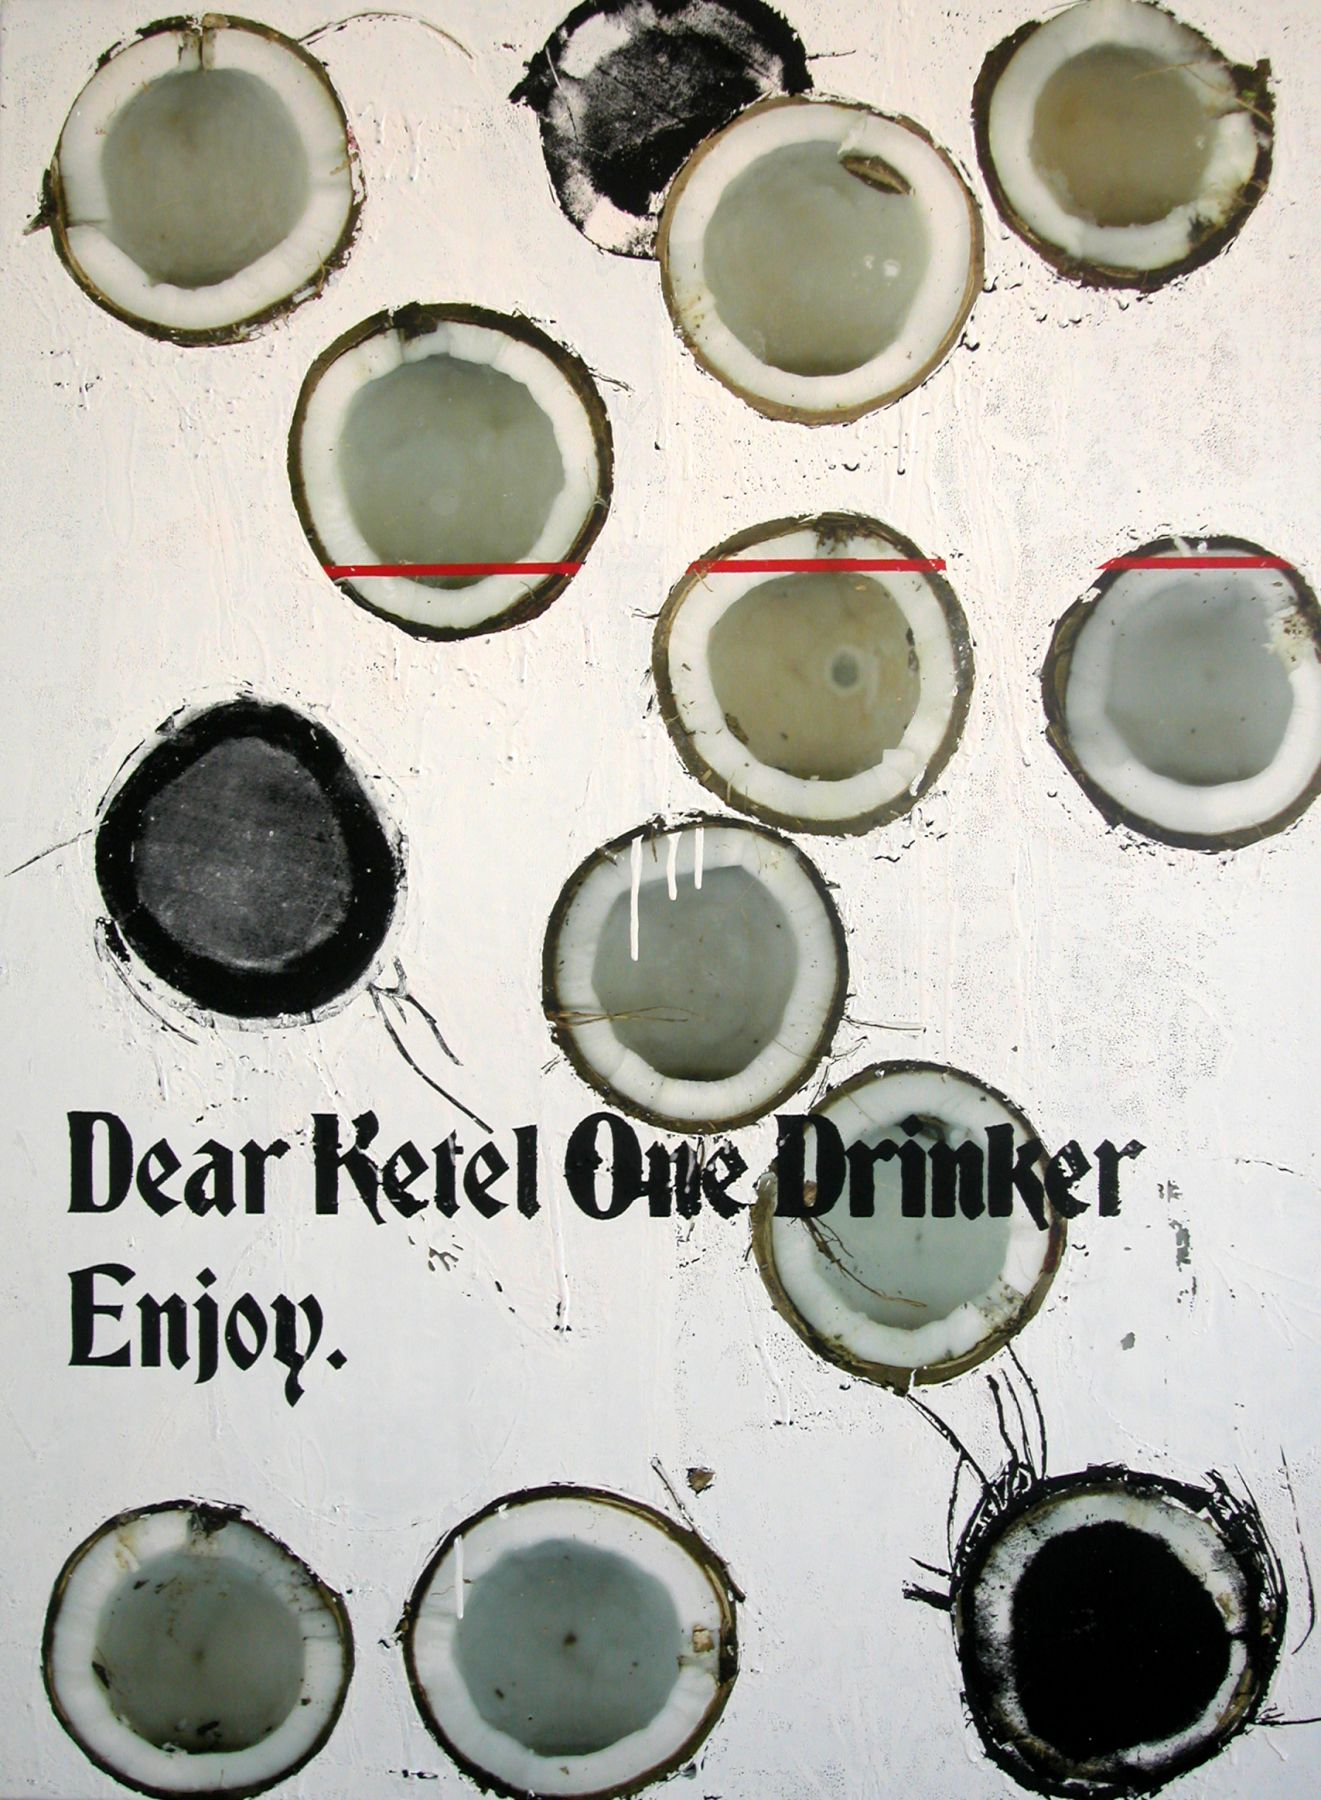 Untitled (Coconut Ketel One), 2005,  silkscreen and inkjet on canvas,  48 x 36 inches